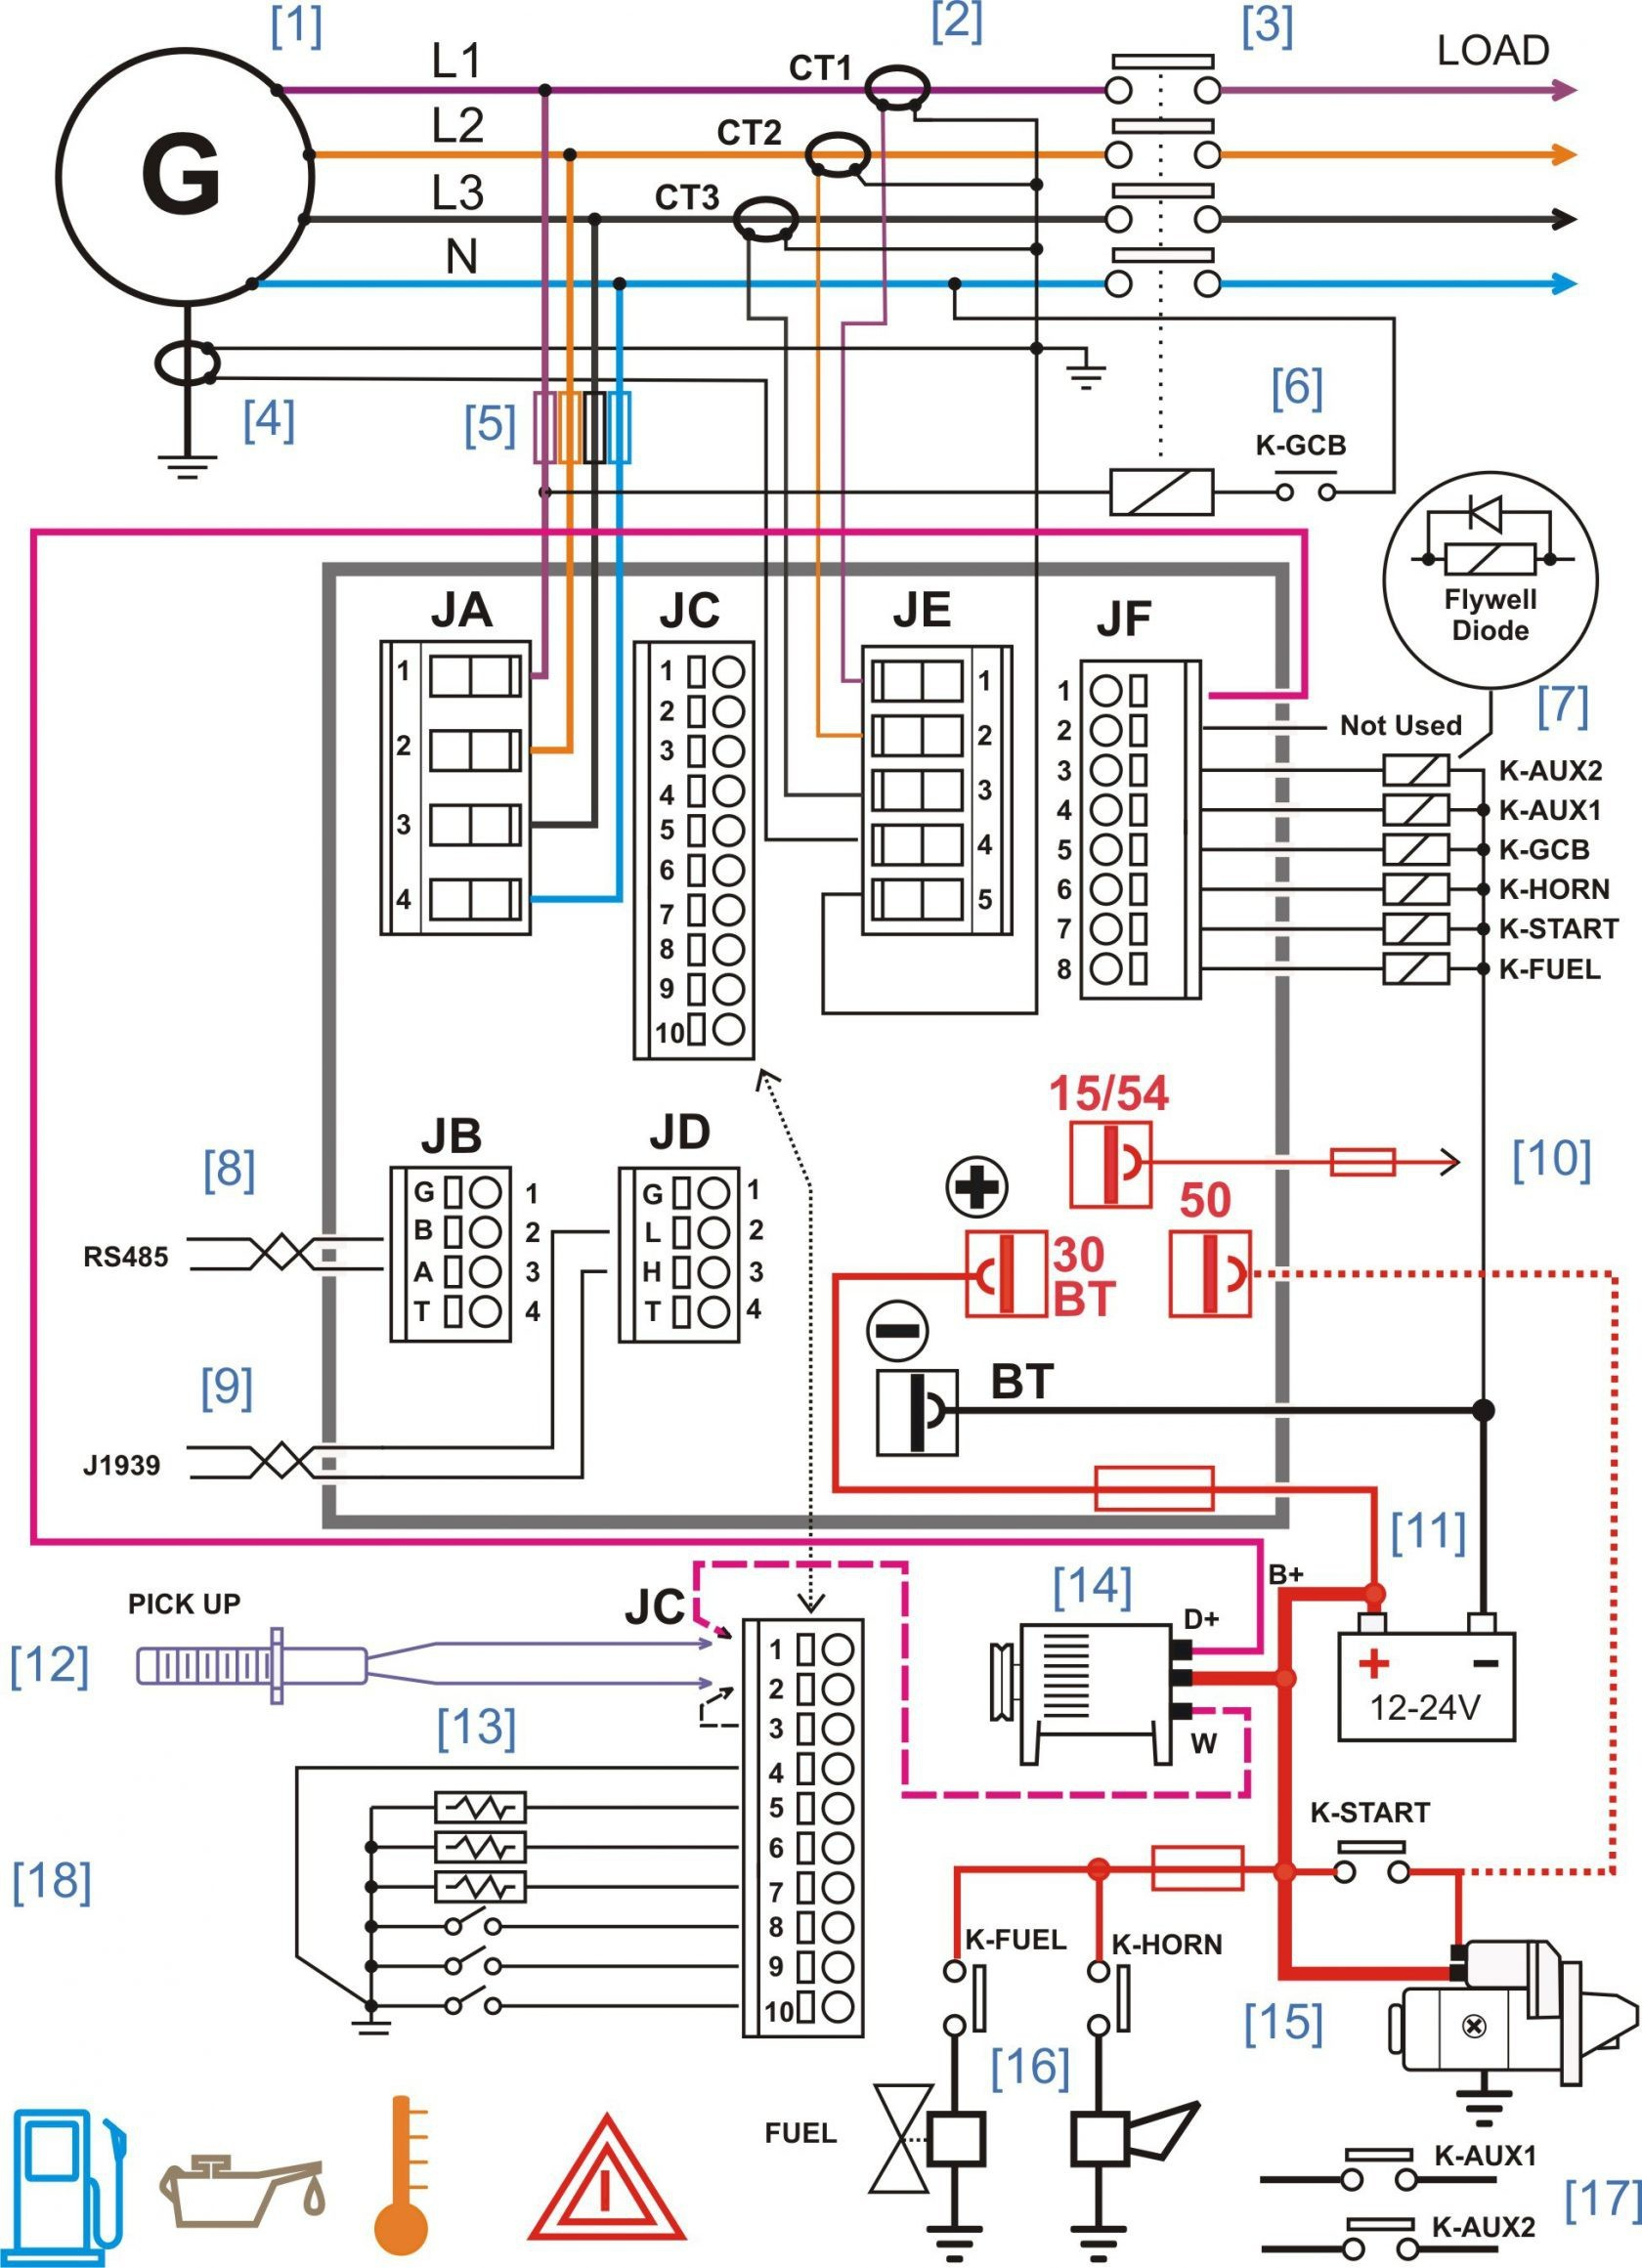 jvc kd x330bts wiring diagram Collection-jvc kd r330 car stereo wiring diagram best fresh jvc kd sr72 wiring rh sandaoil co 10-j